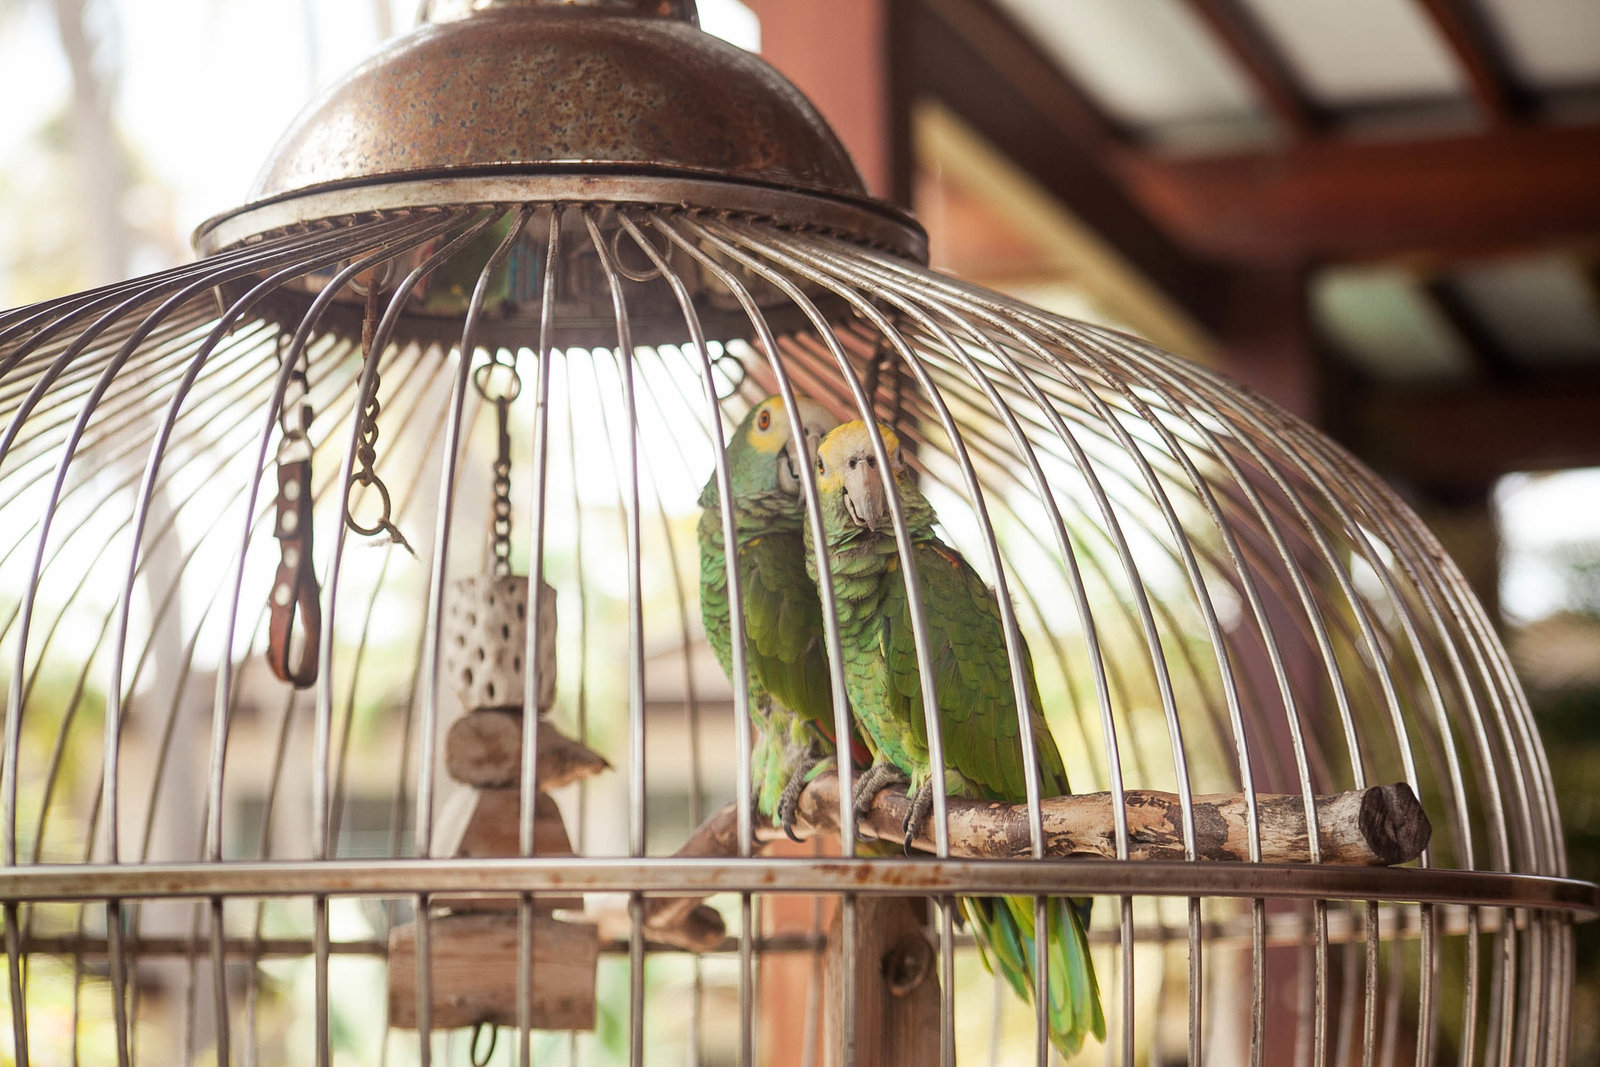 yellow-crown-parrots-cage-travel-aruba-kate-timbers-photography-811